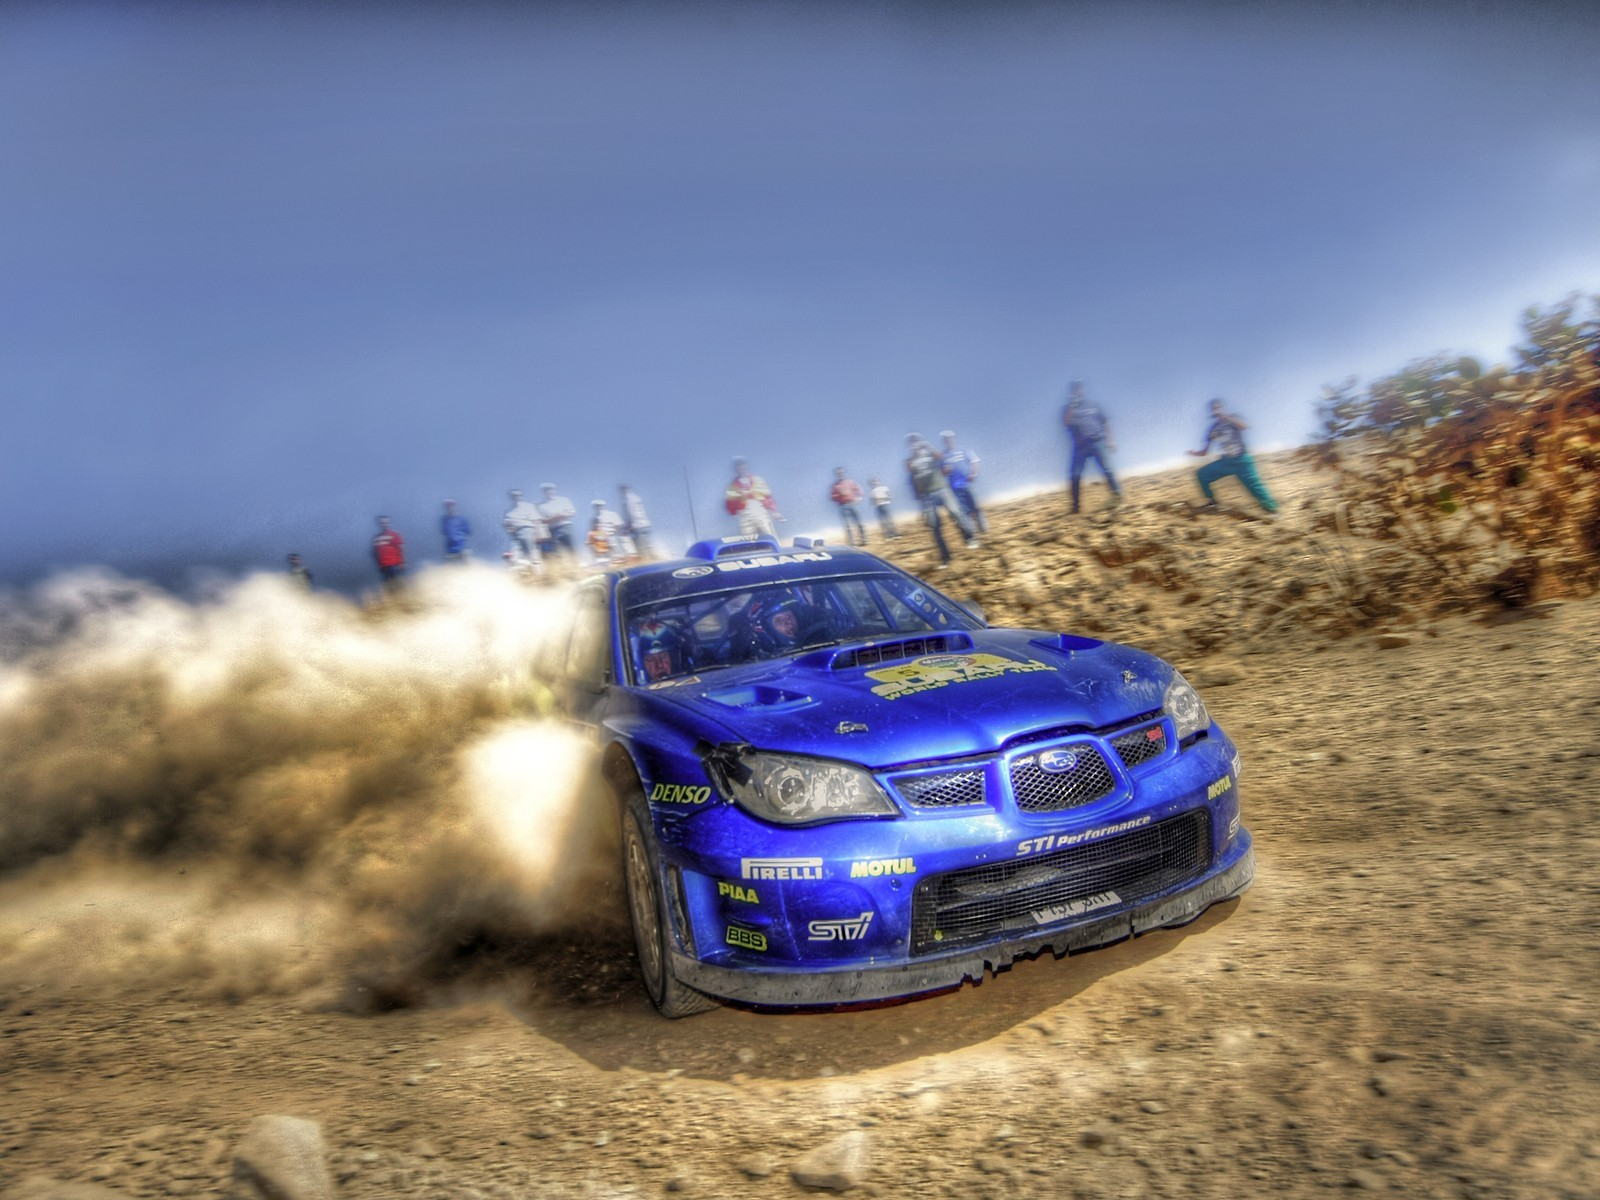 cars dust rally Subaru HD Wallpaper